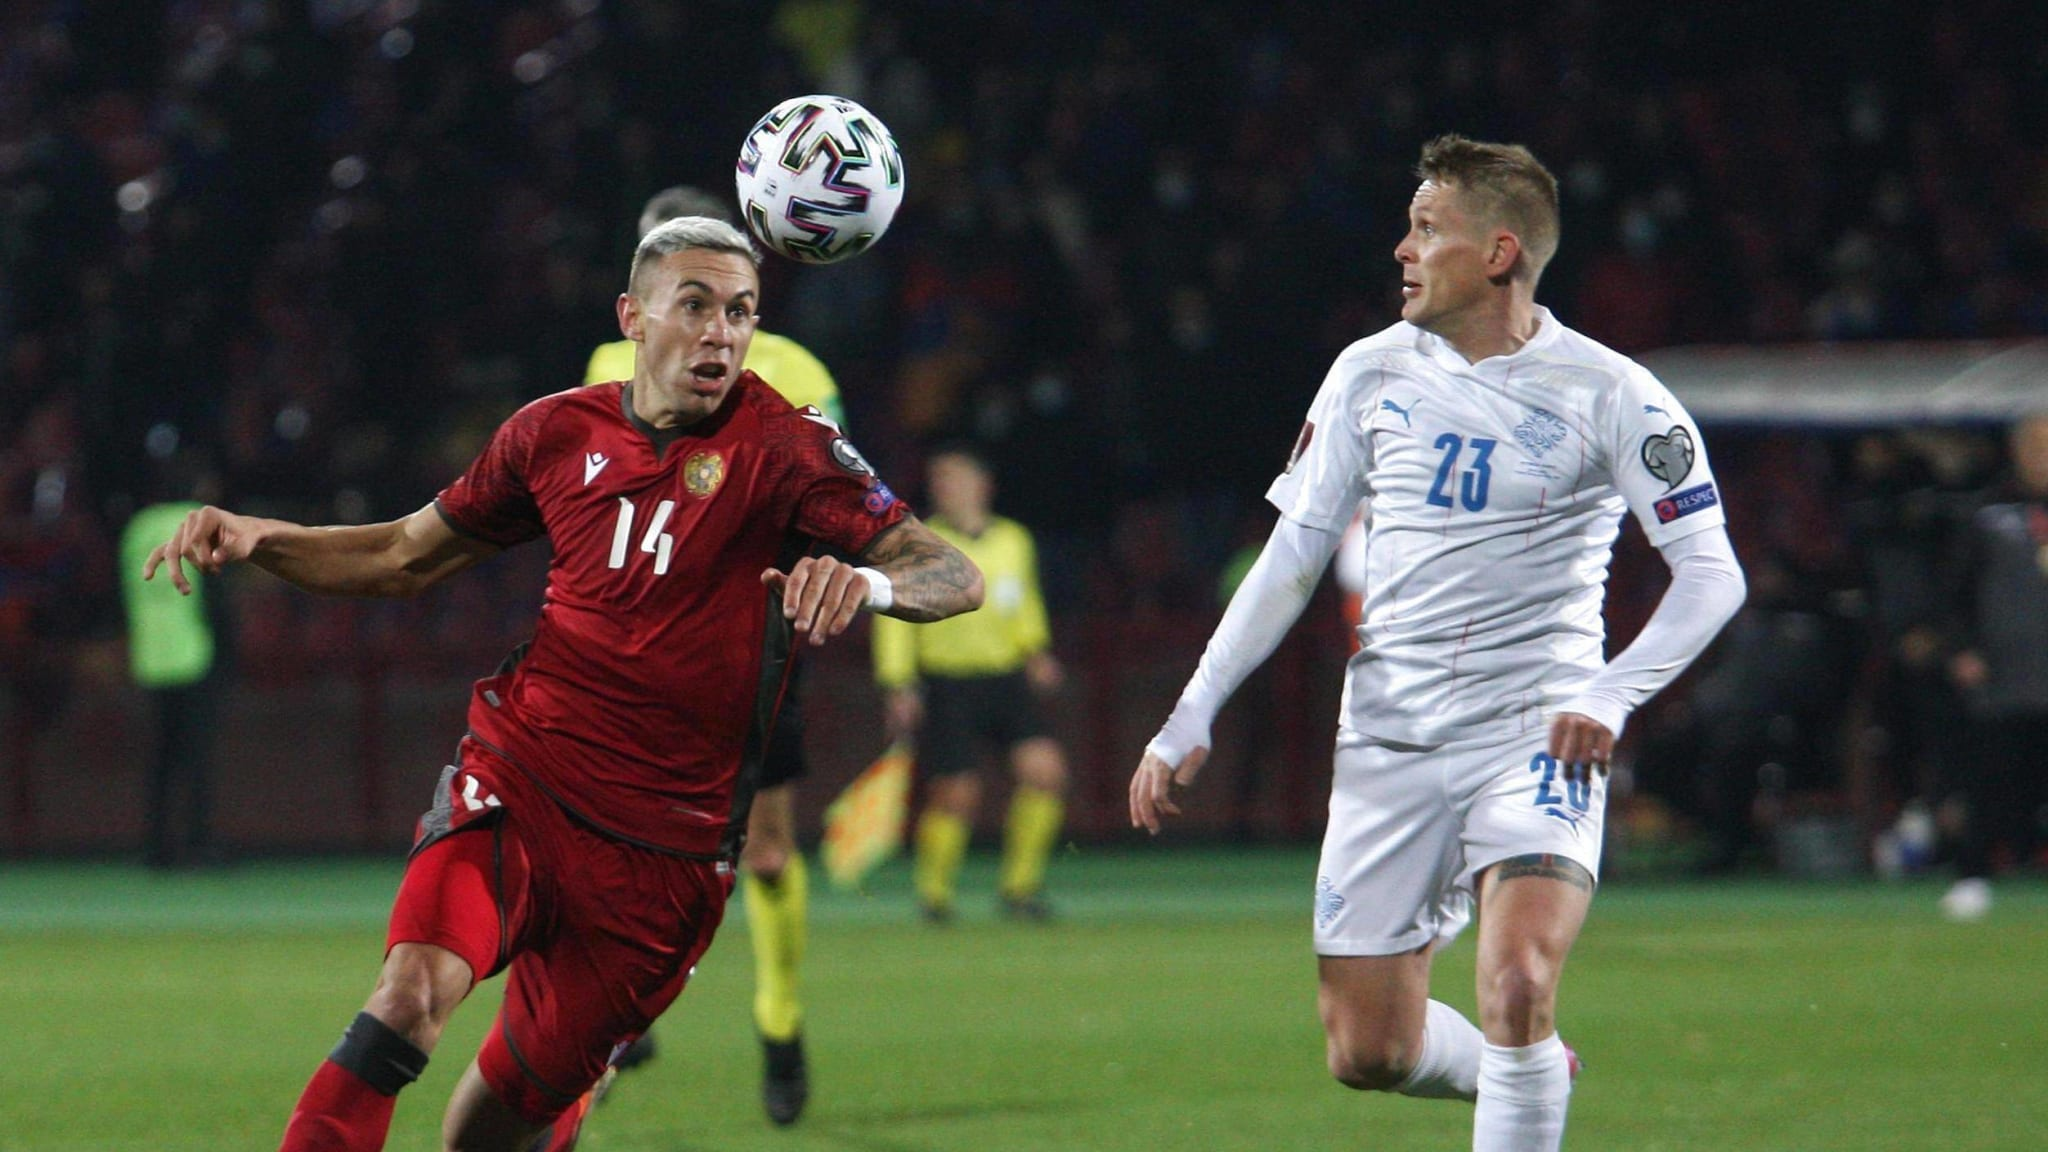 Norberto Briasco (L) of Armenia vies with Ari Skulason of Iceland during the 2022 FIFA World Cup, WM, Weltmeisterschaft, Fussball qualification match between Armenia and Iceland in Yerevan, Armenia, March 28, 2021.